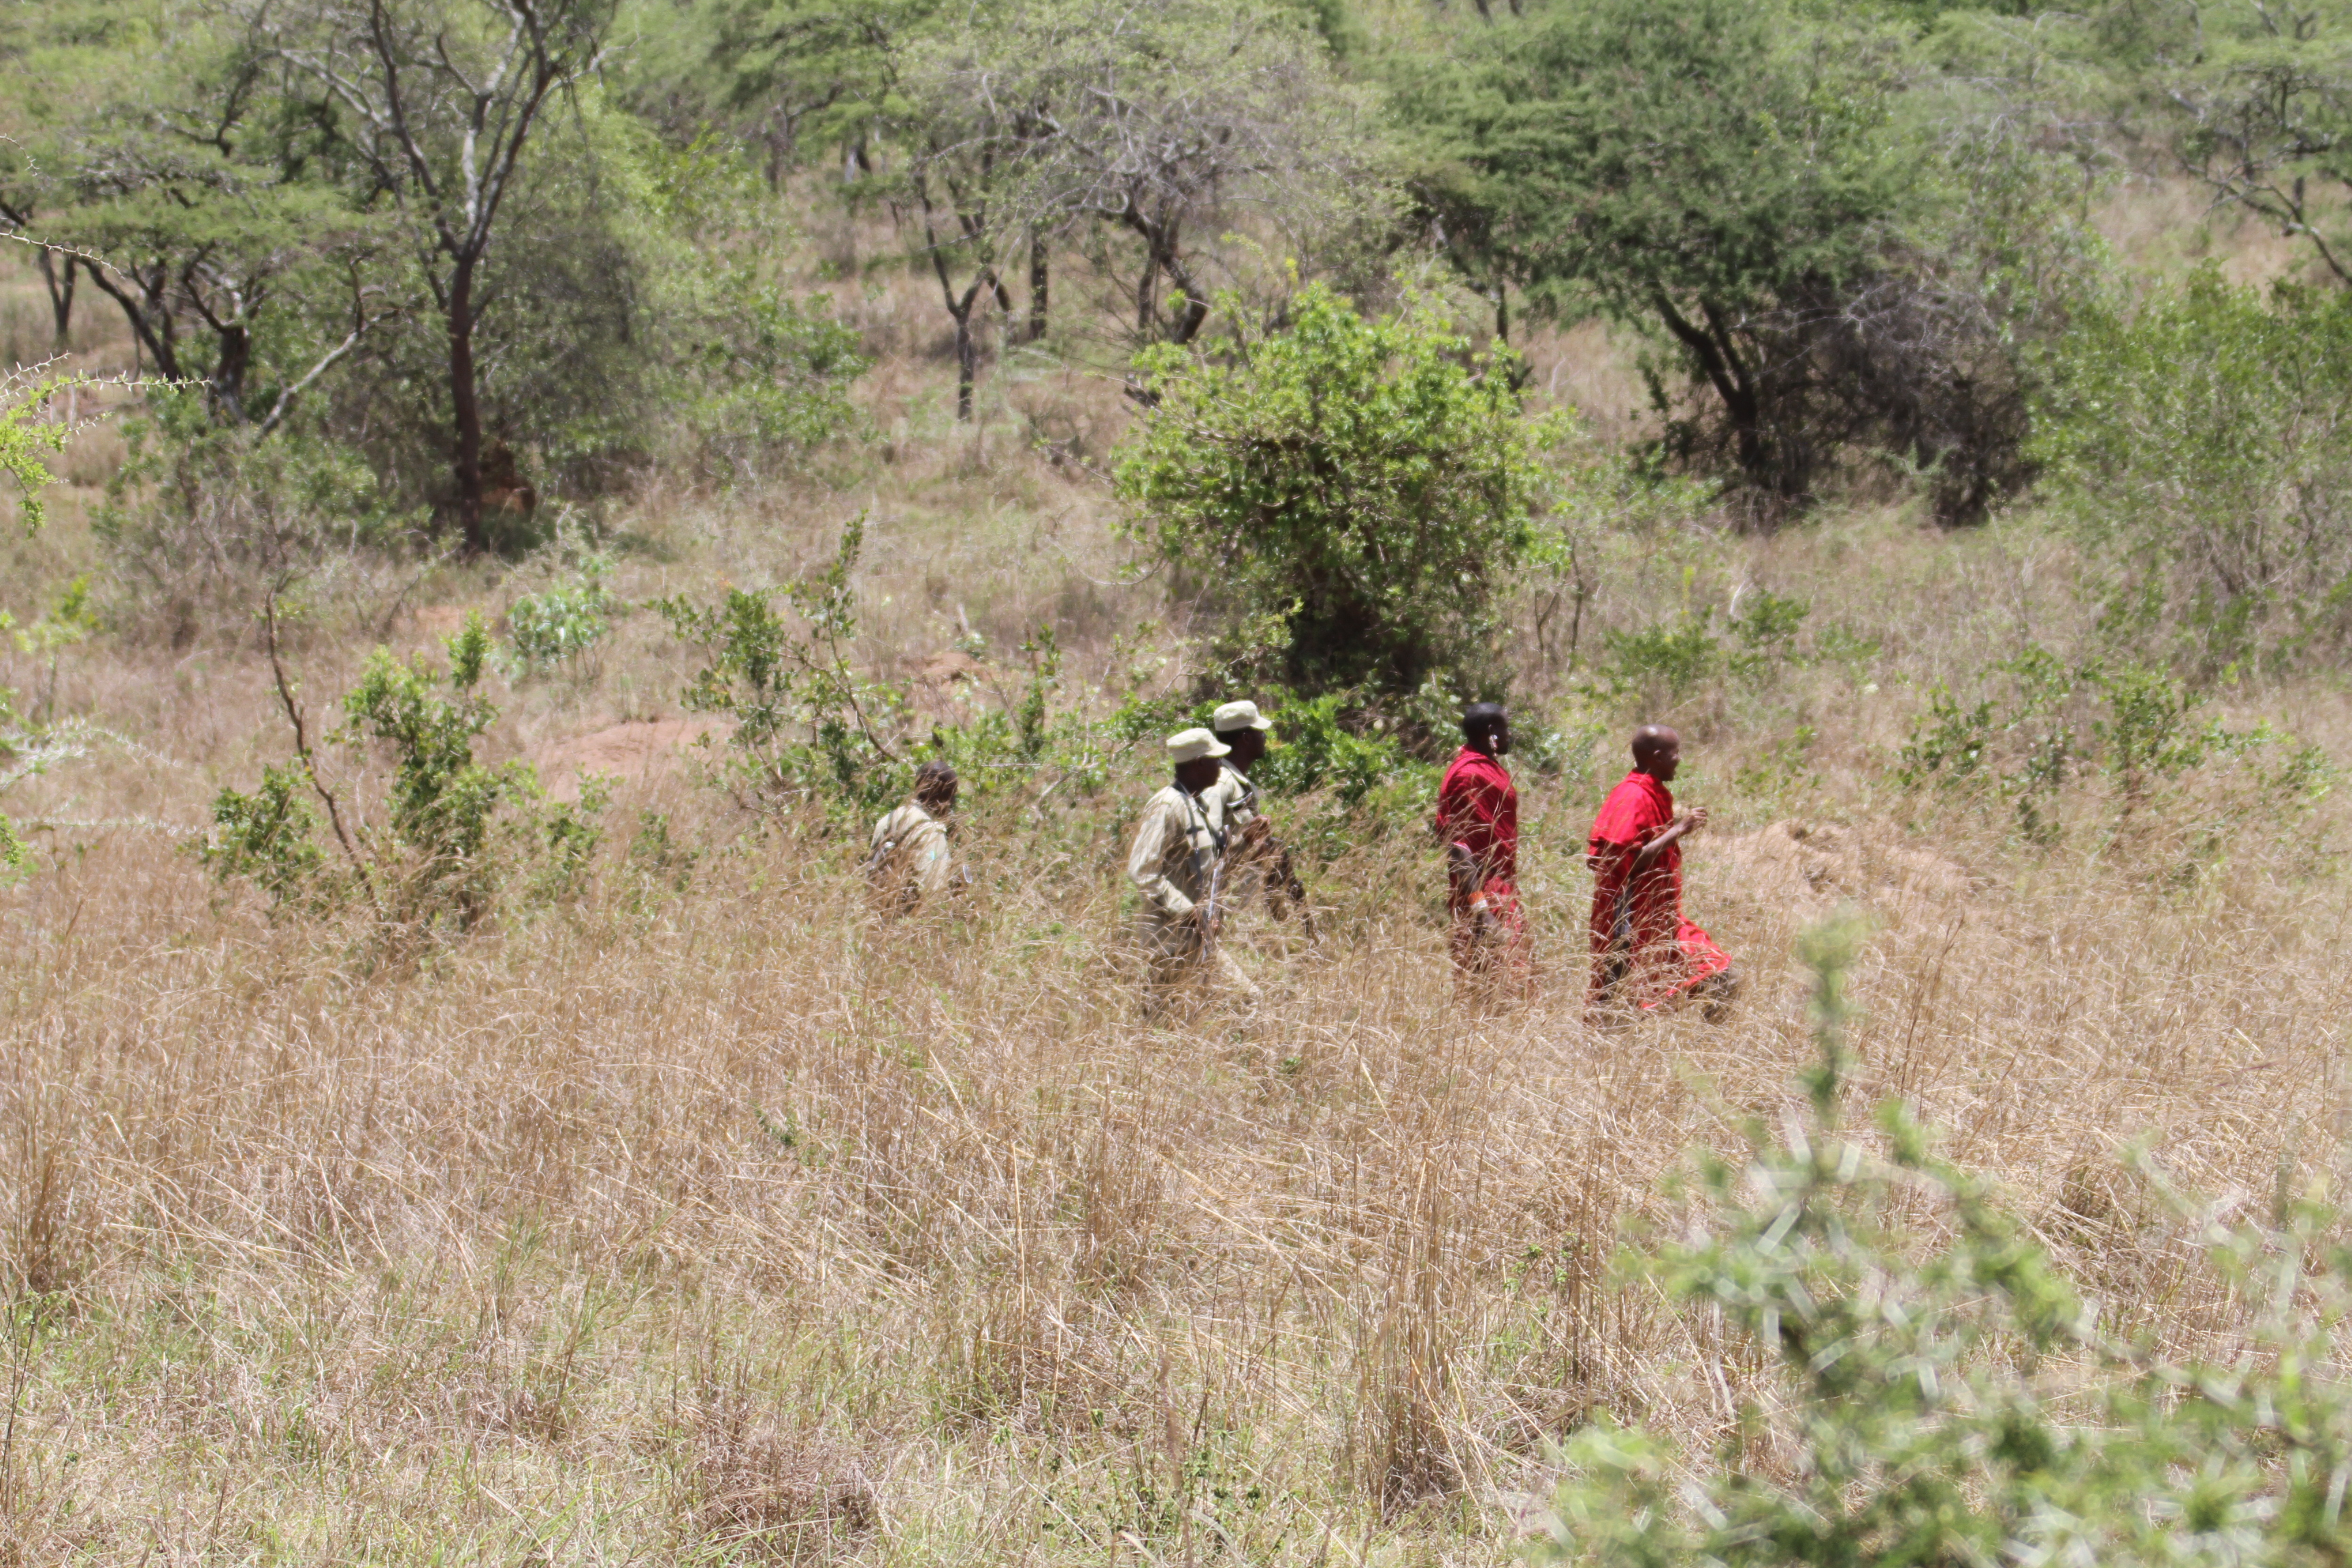 Eric and Kisimir showing the Akagera Park Rangers how to track. Photo Credit: Sarah Hall/African Parks